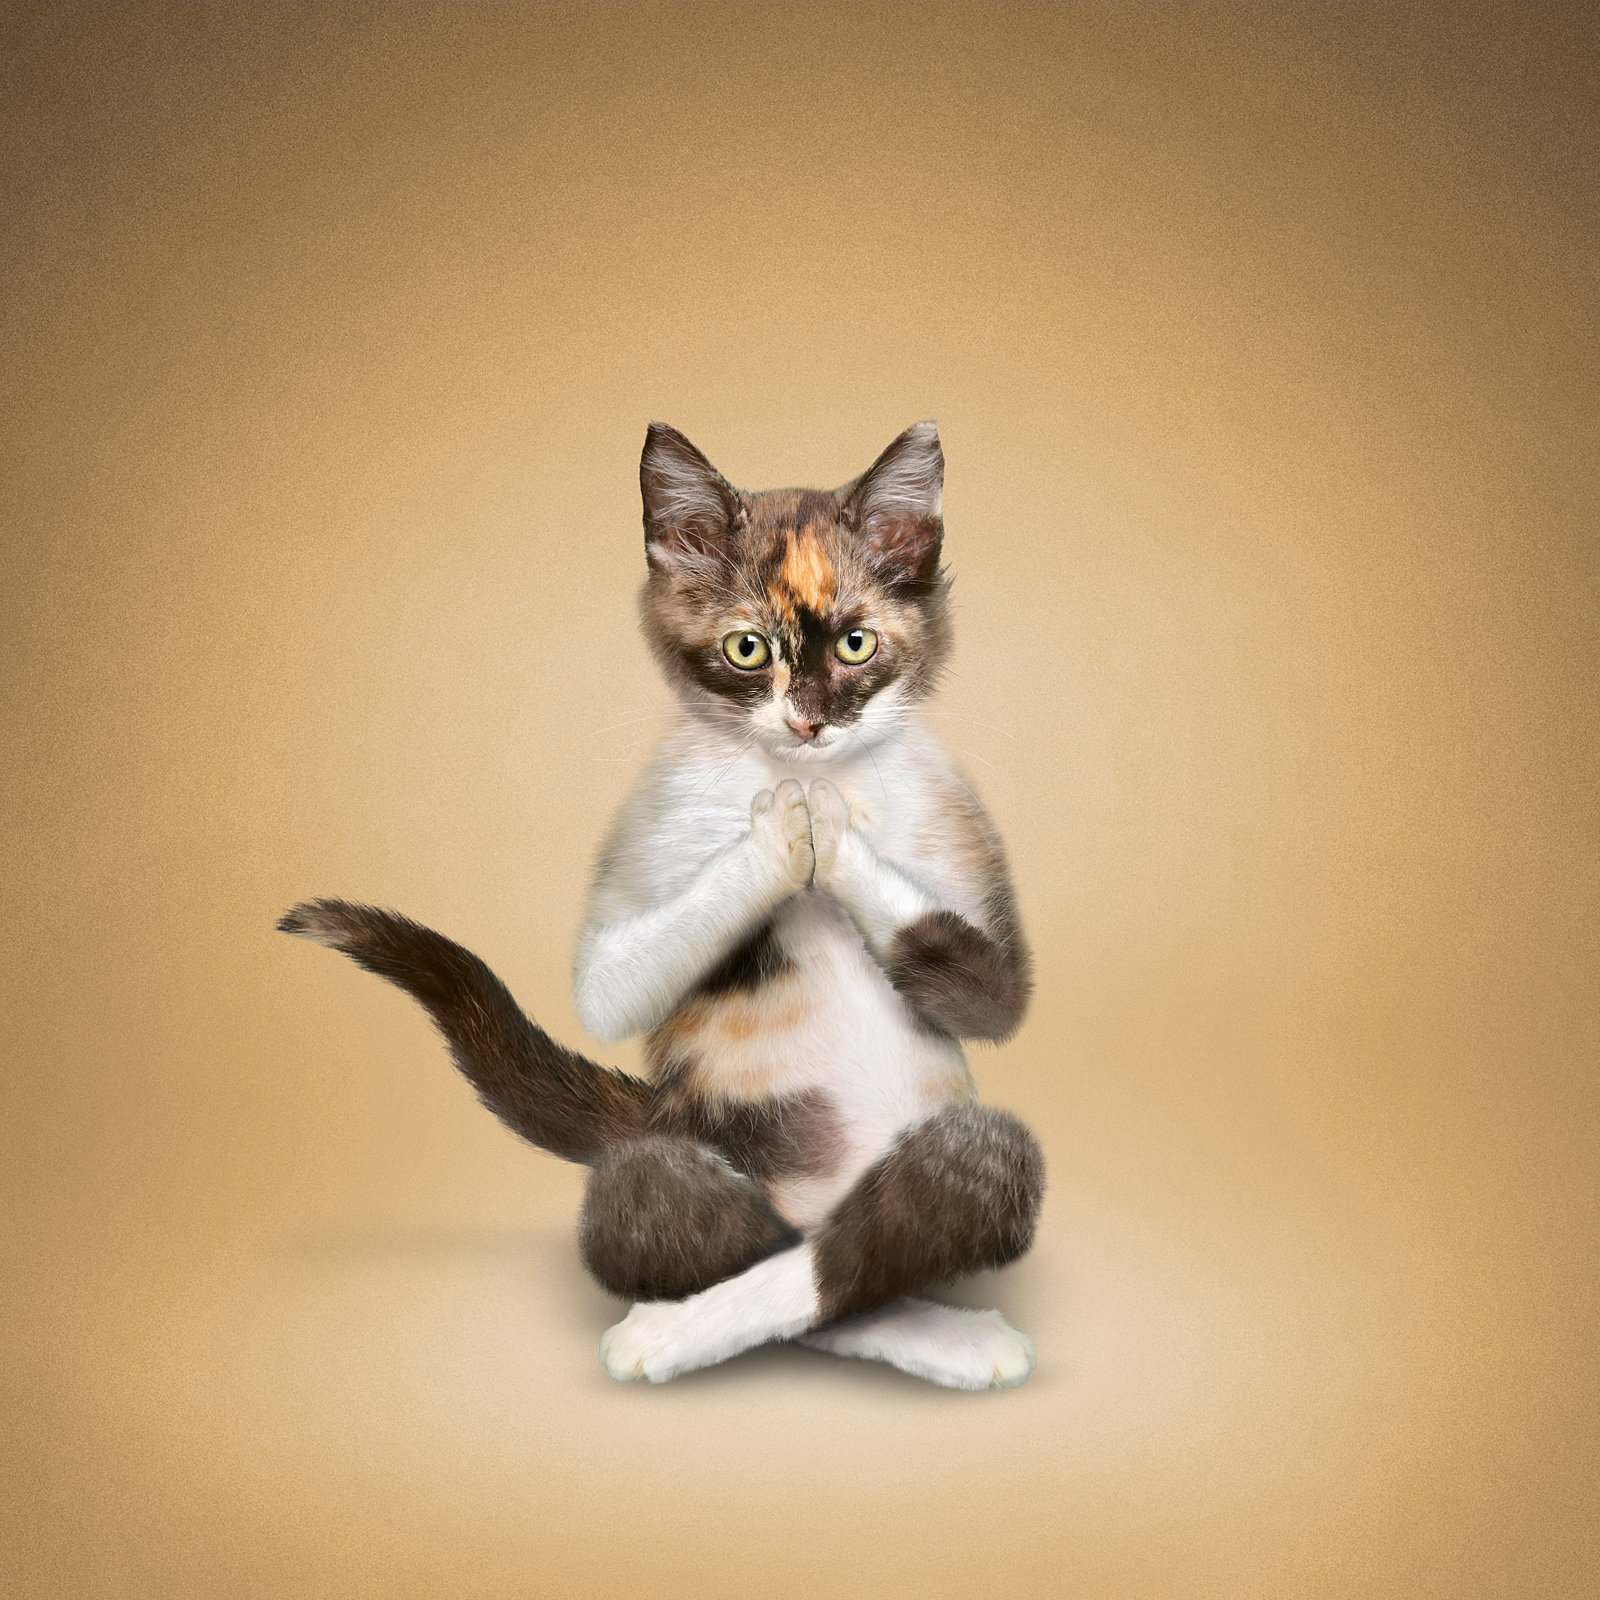 Pictures Of Yoga Cats